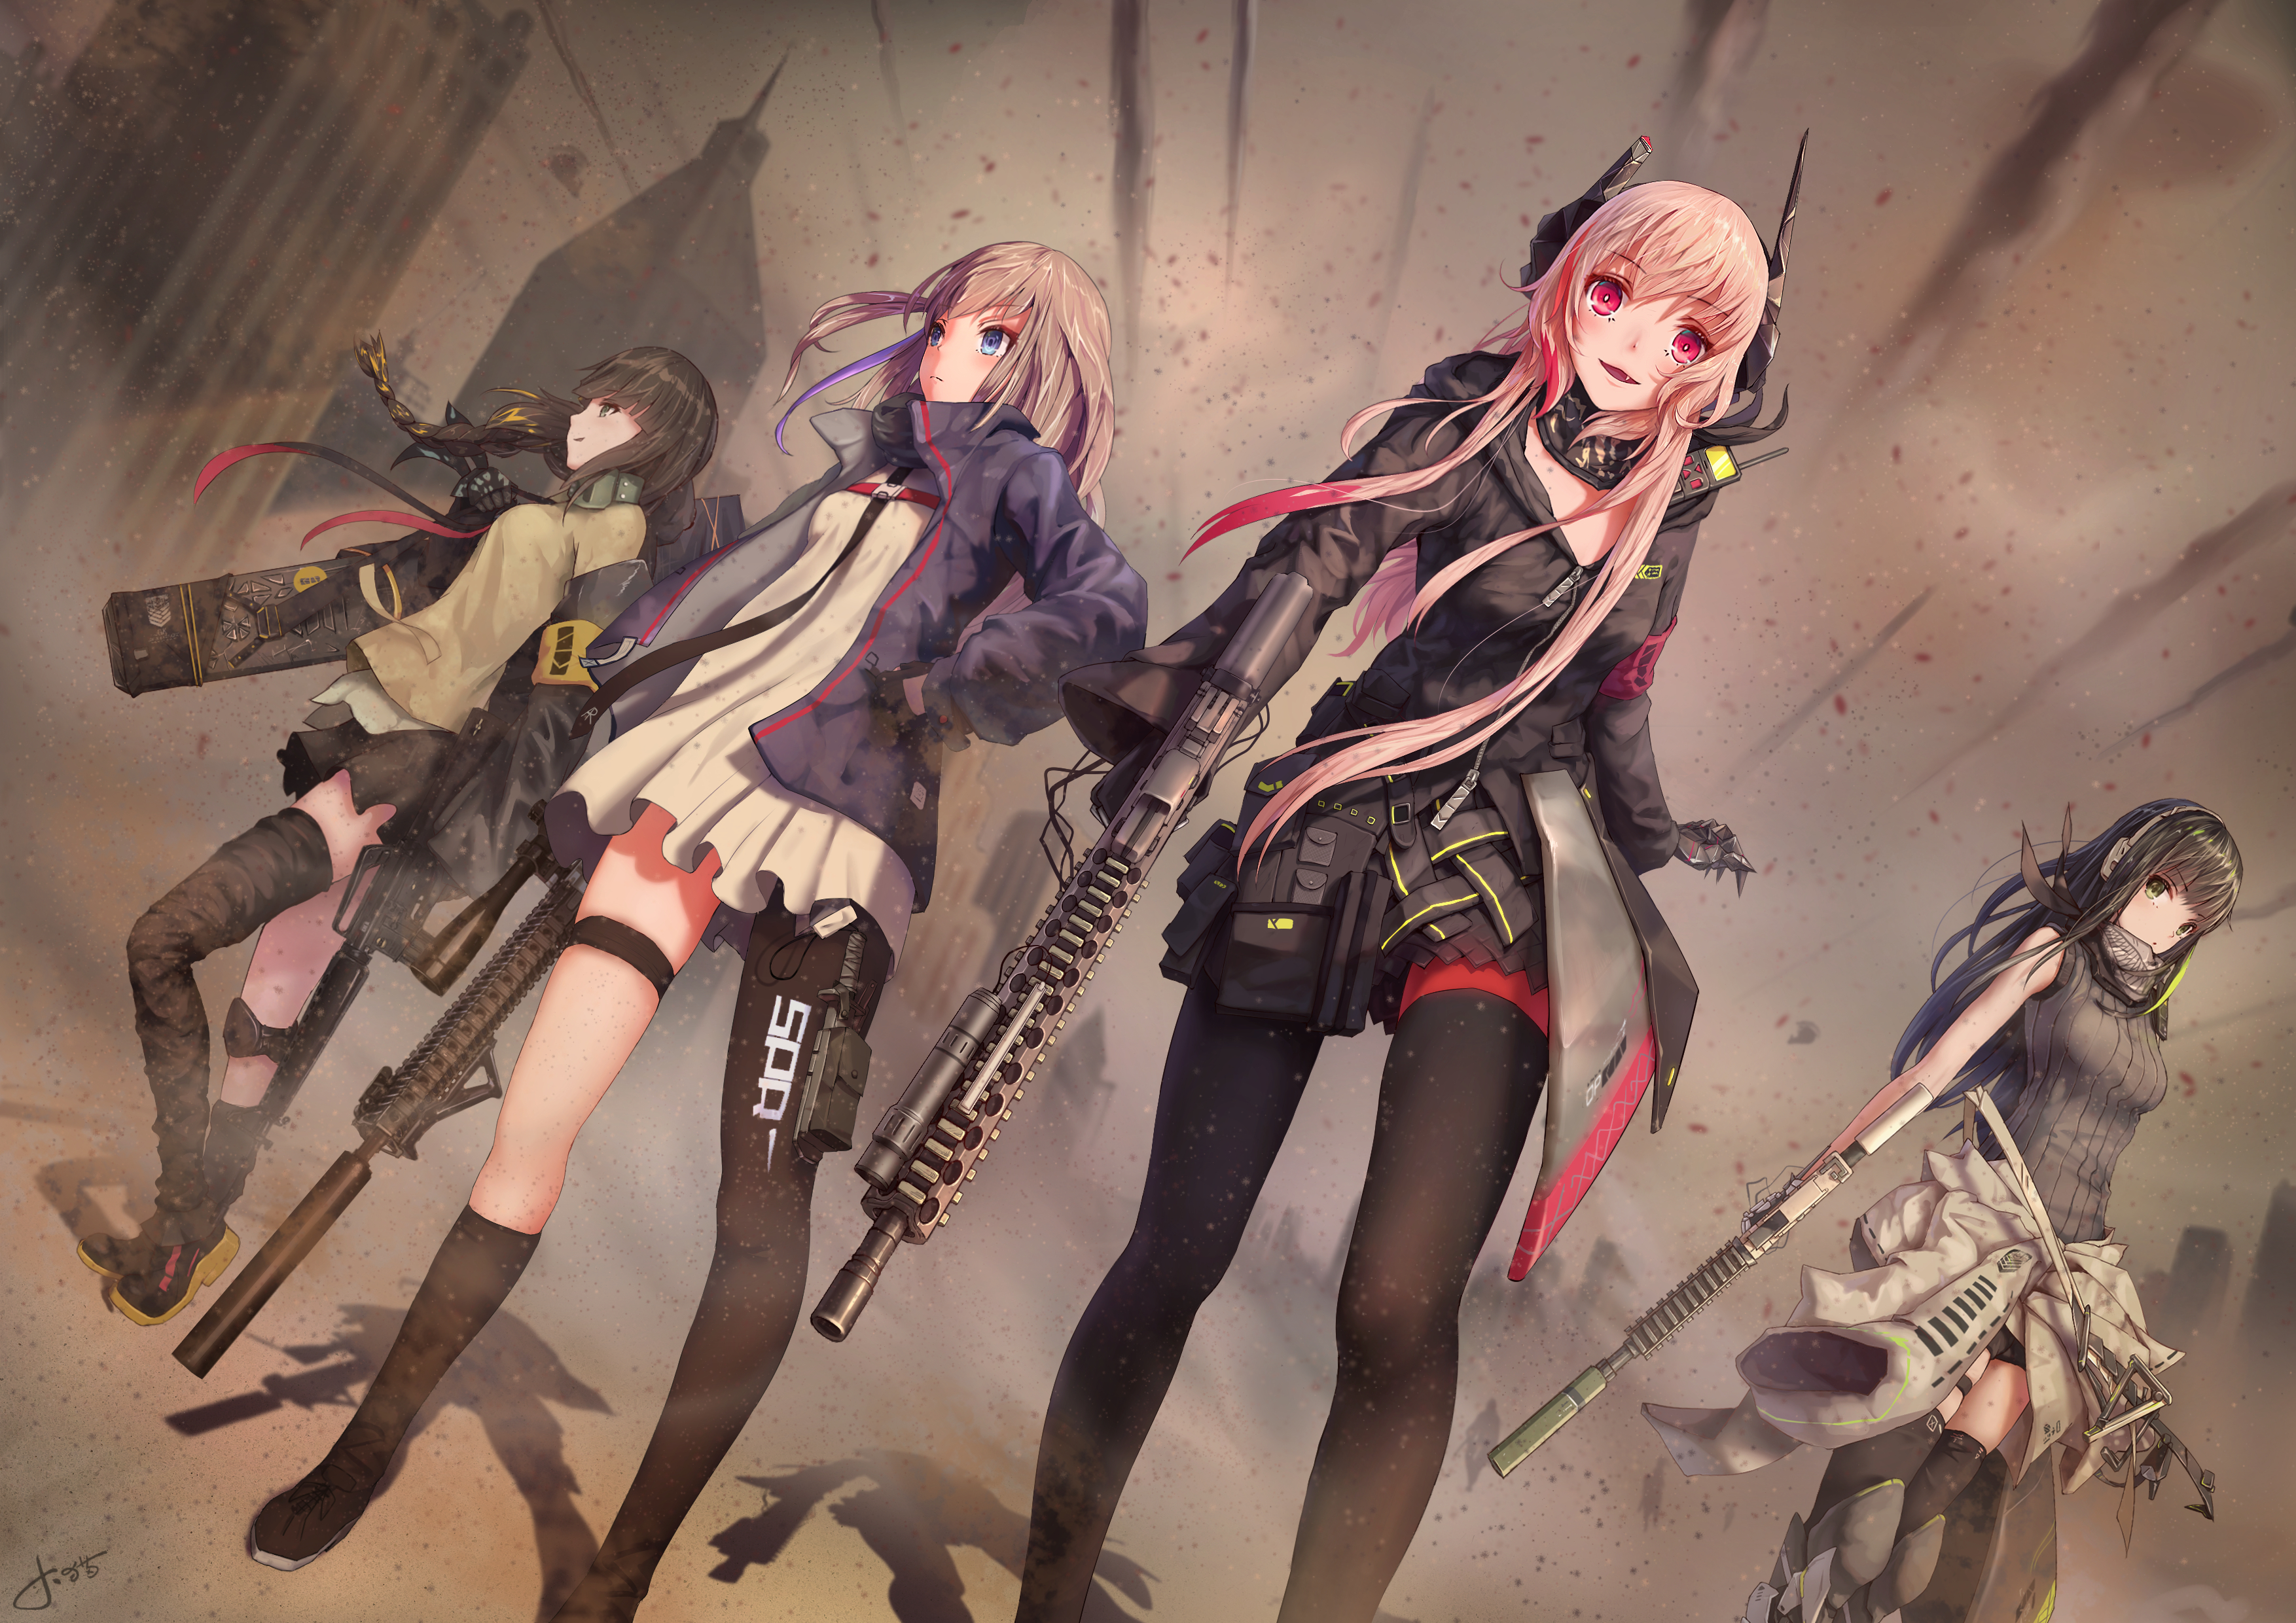 Girls Frontline Backgrounds on Wallpapers Vista